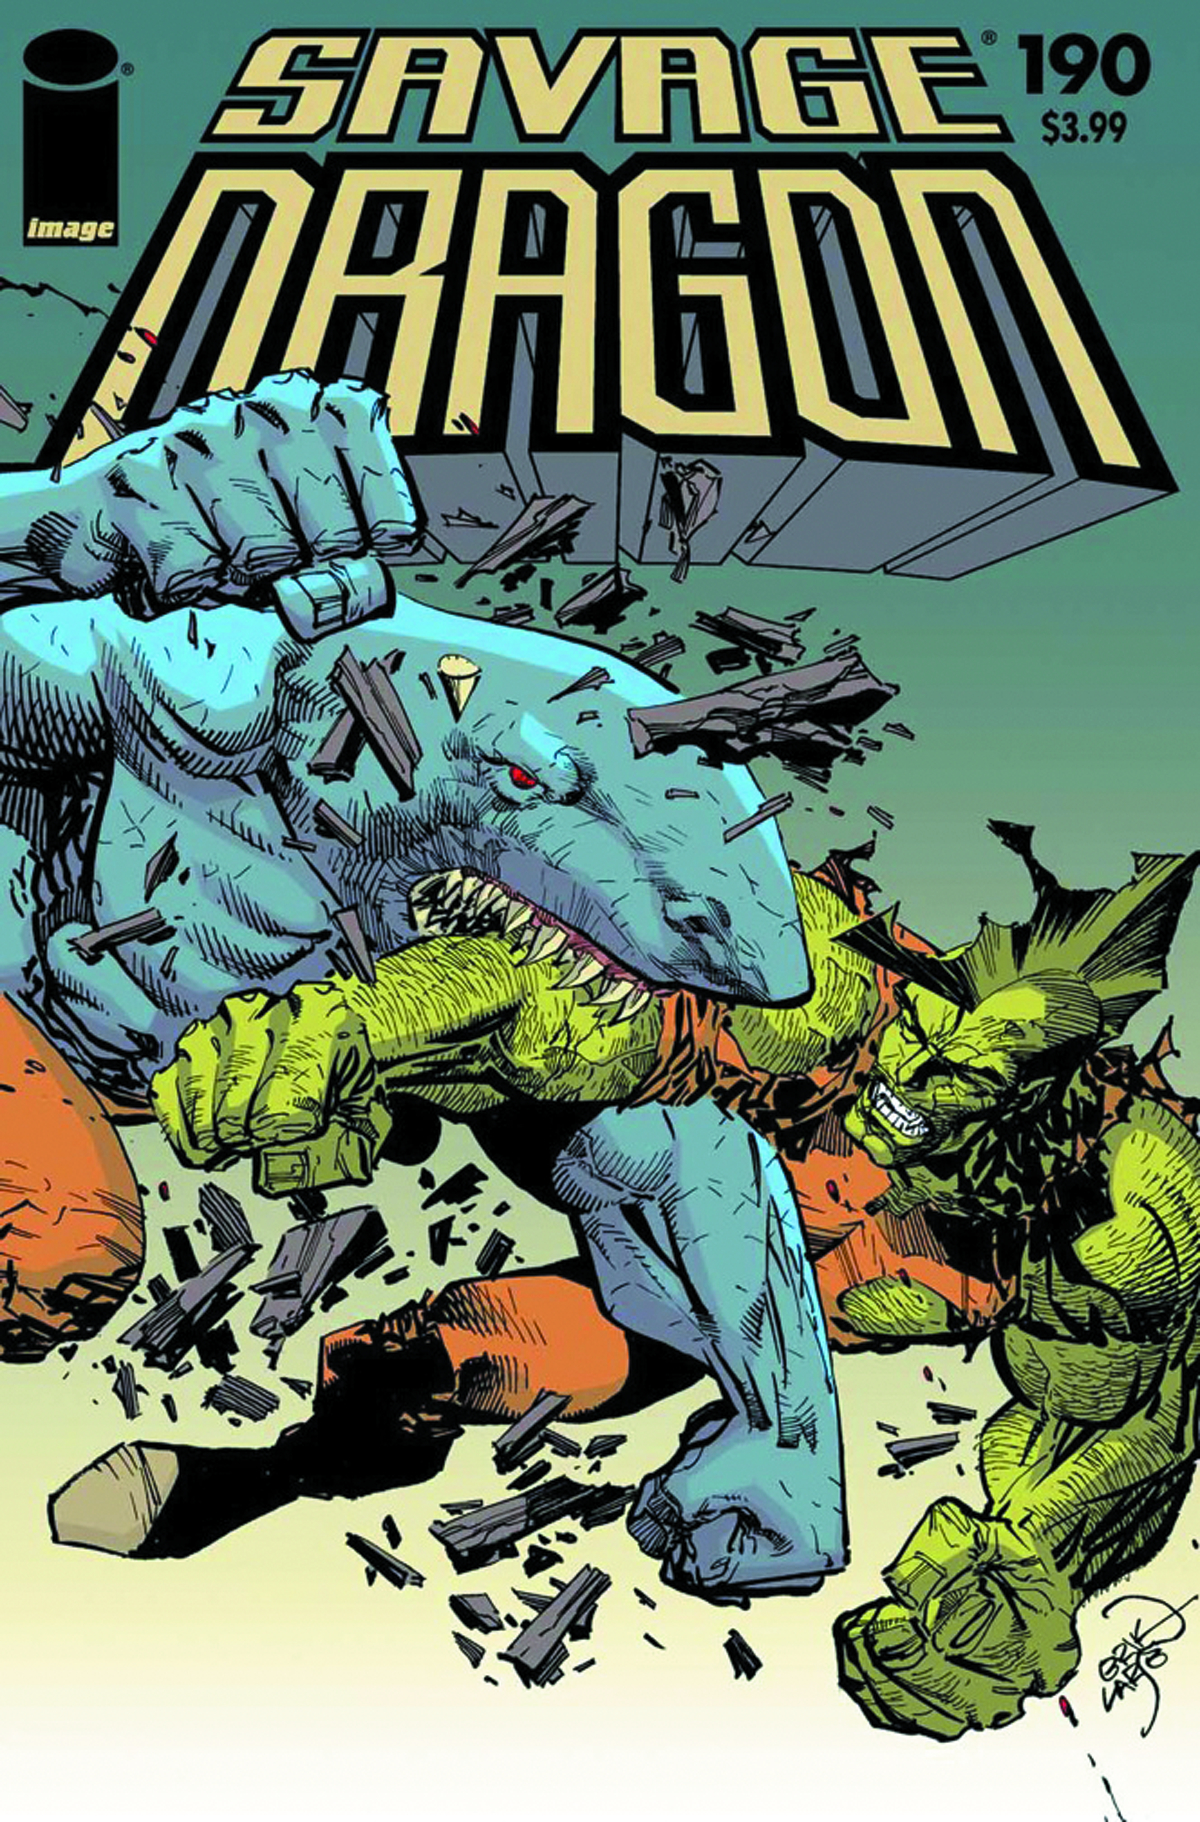 SAVAGE DRAGON #190 (MR)